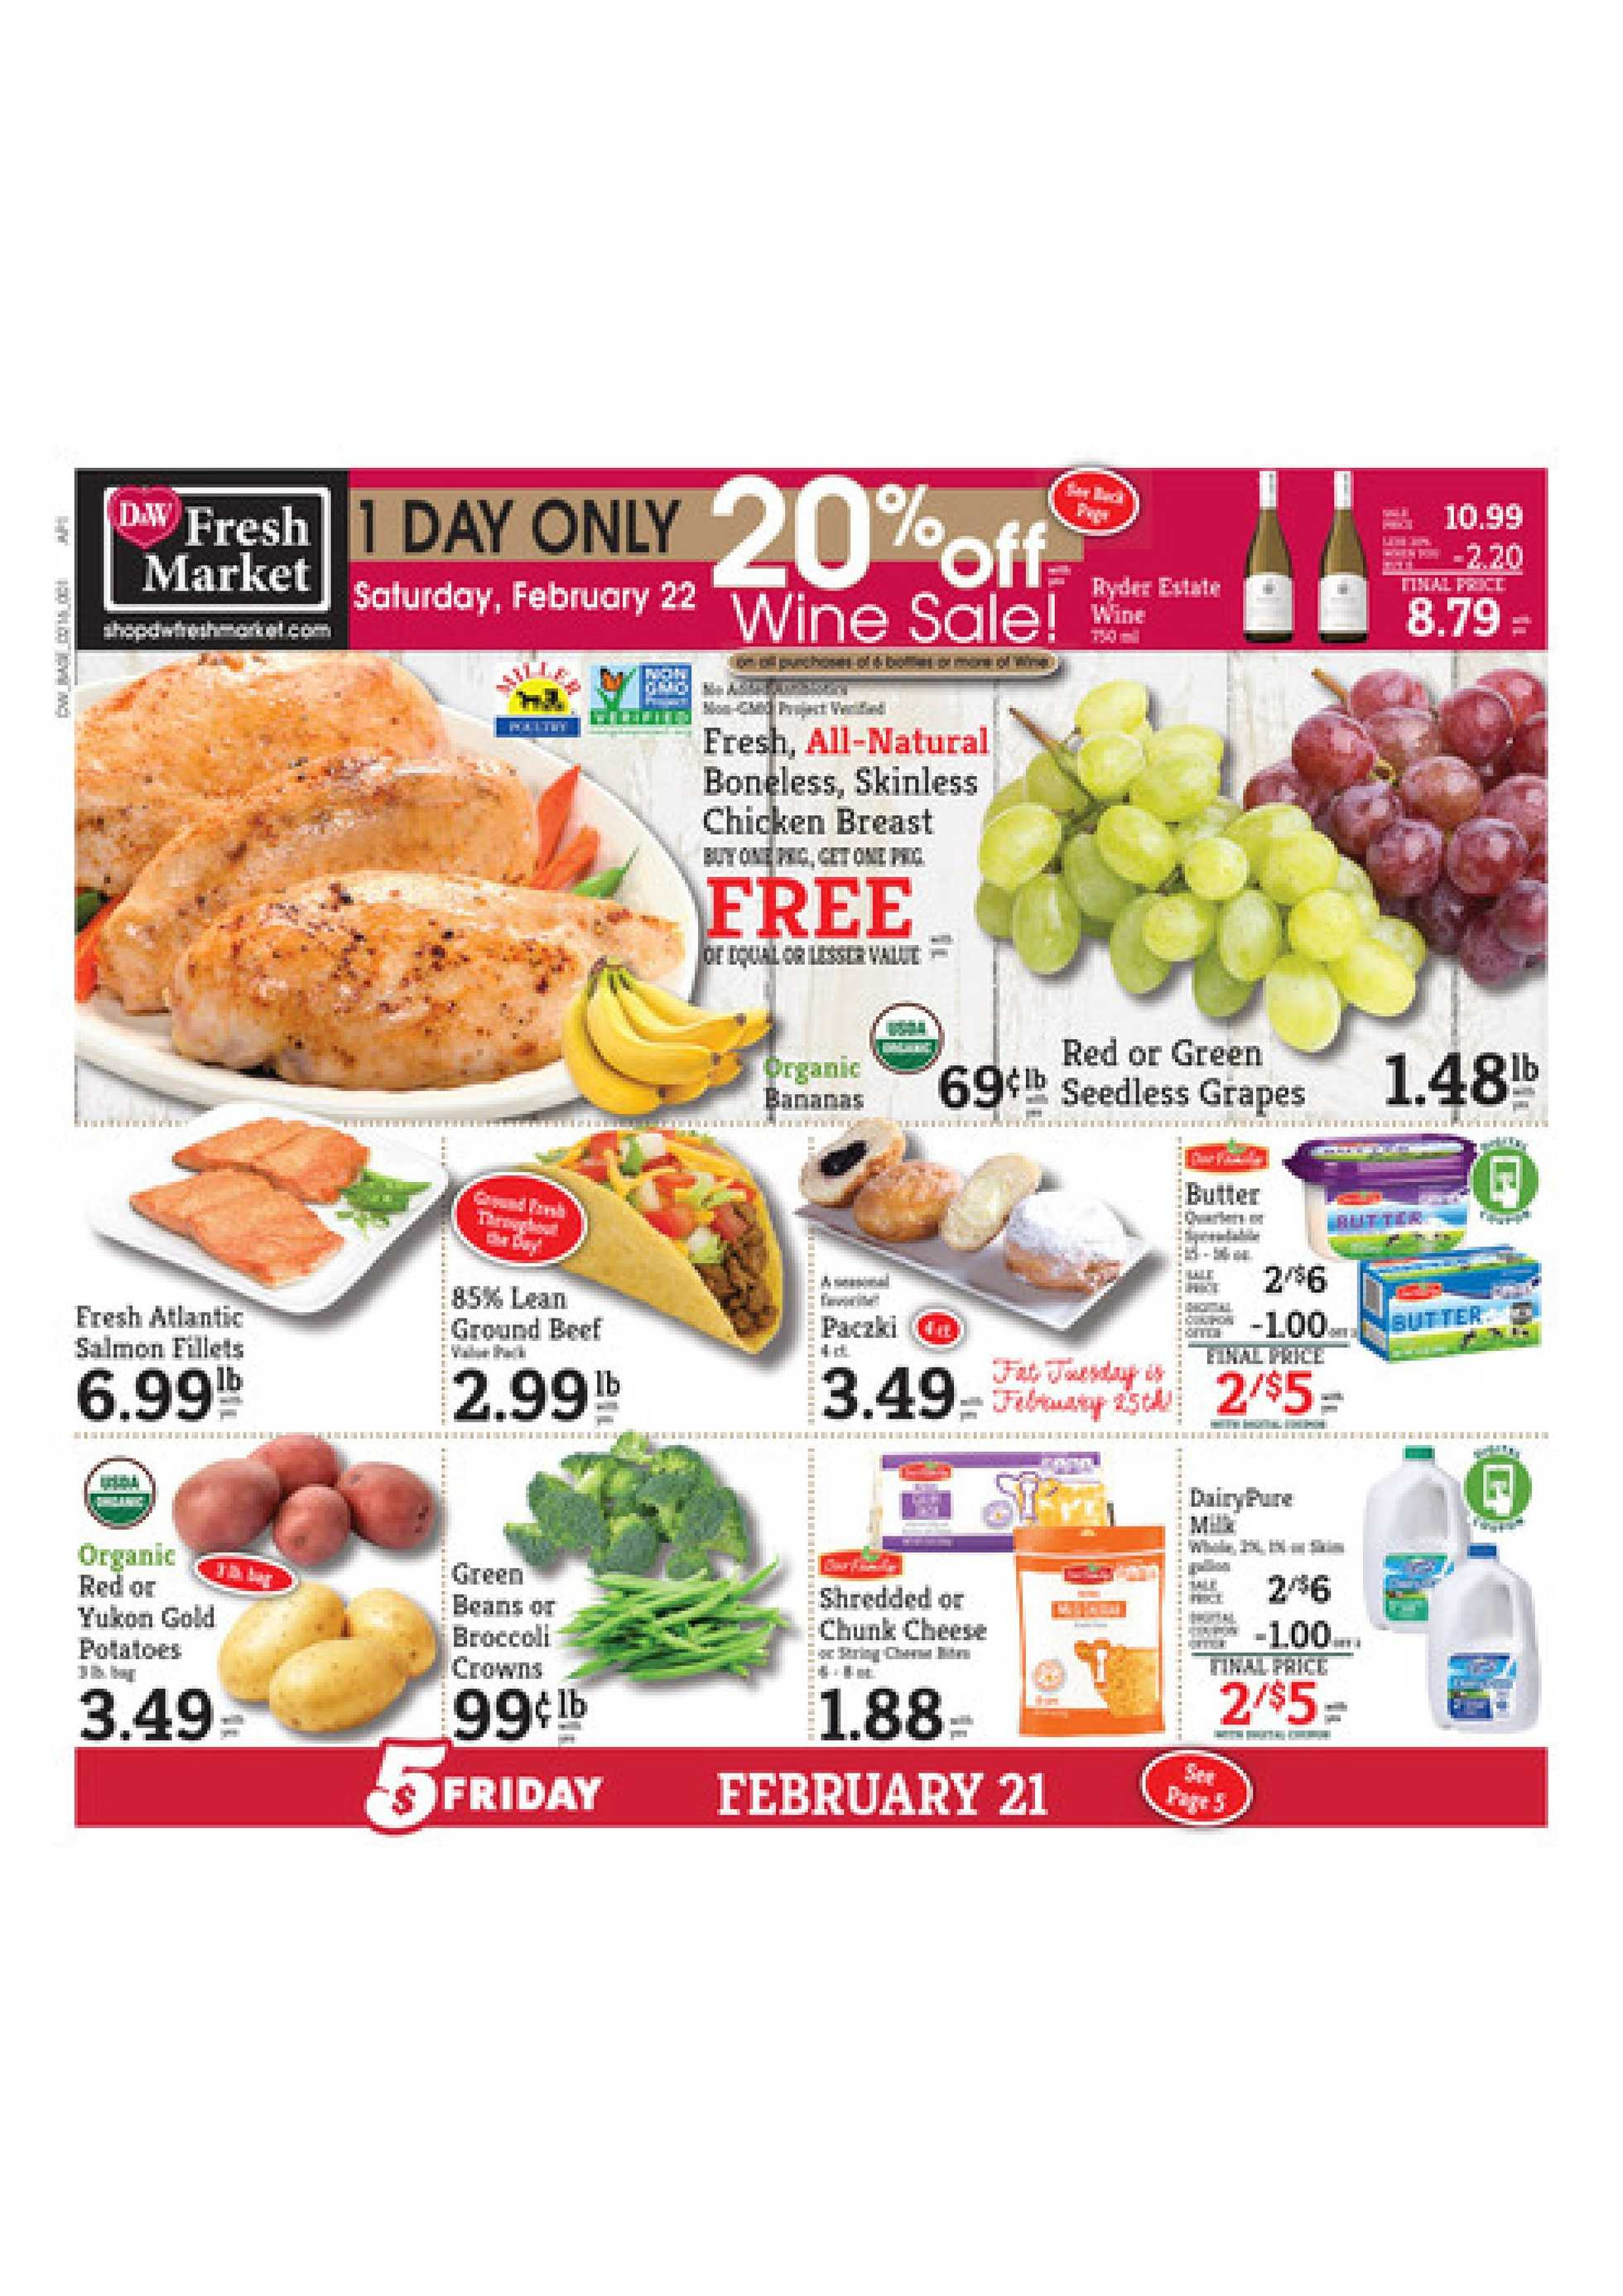 D&W Fresh Market - promo starting from 02/16/20 to 02/22/20 - page 1.